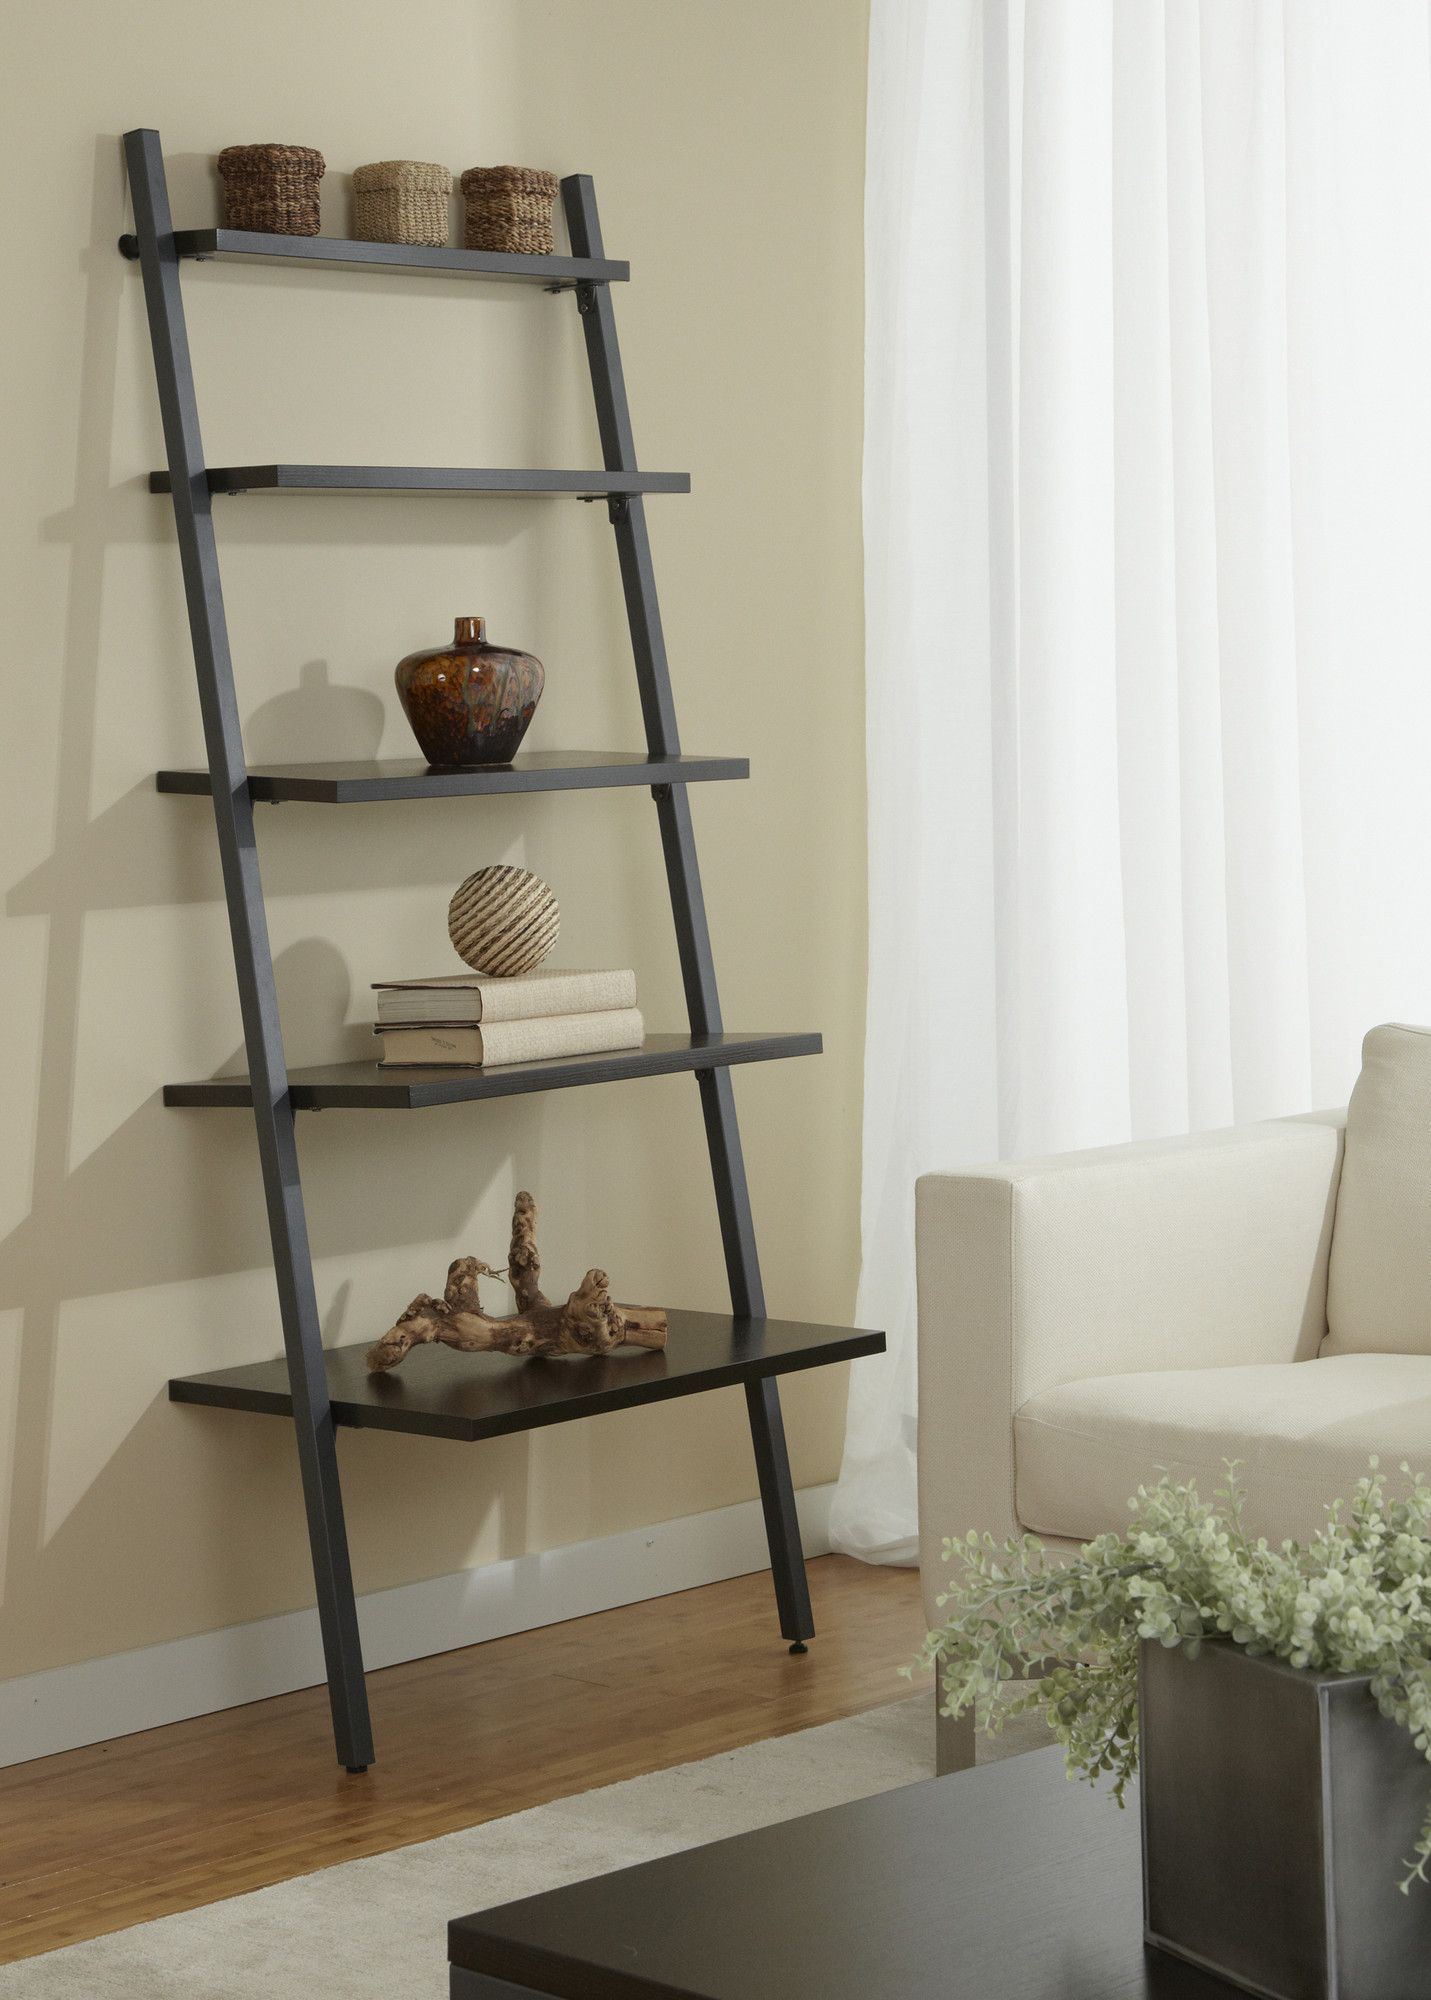 mainstays leaning reviews ladder product bookcases shelf com espresso walmart bookcase